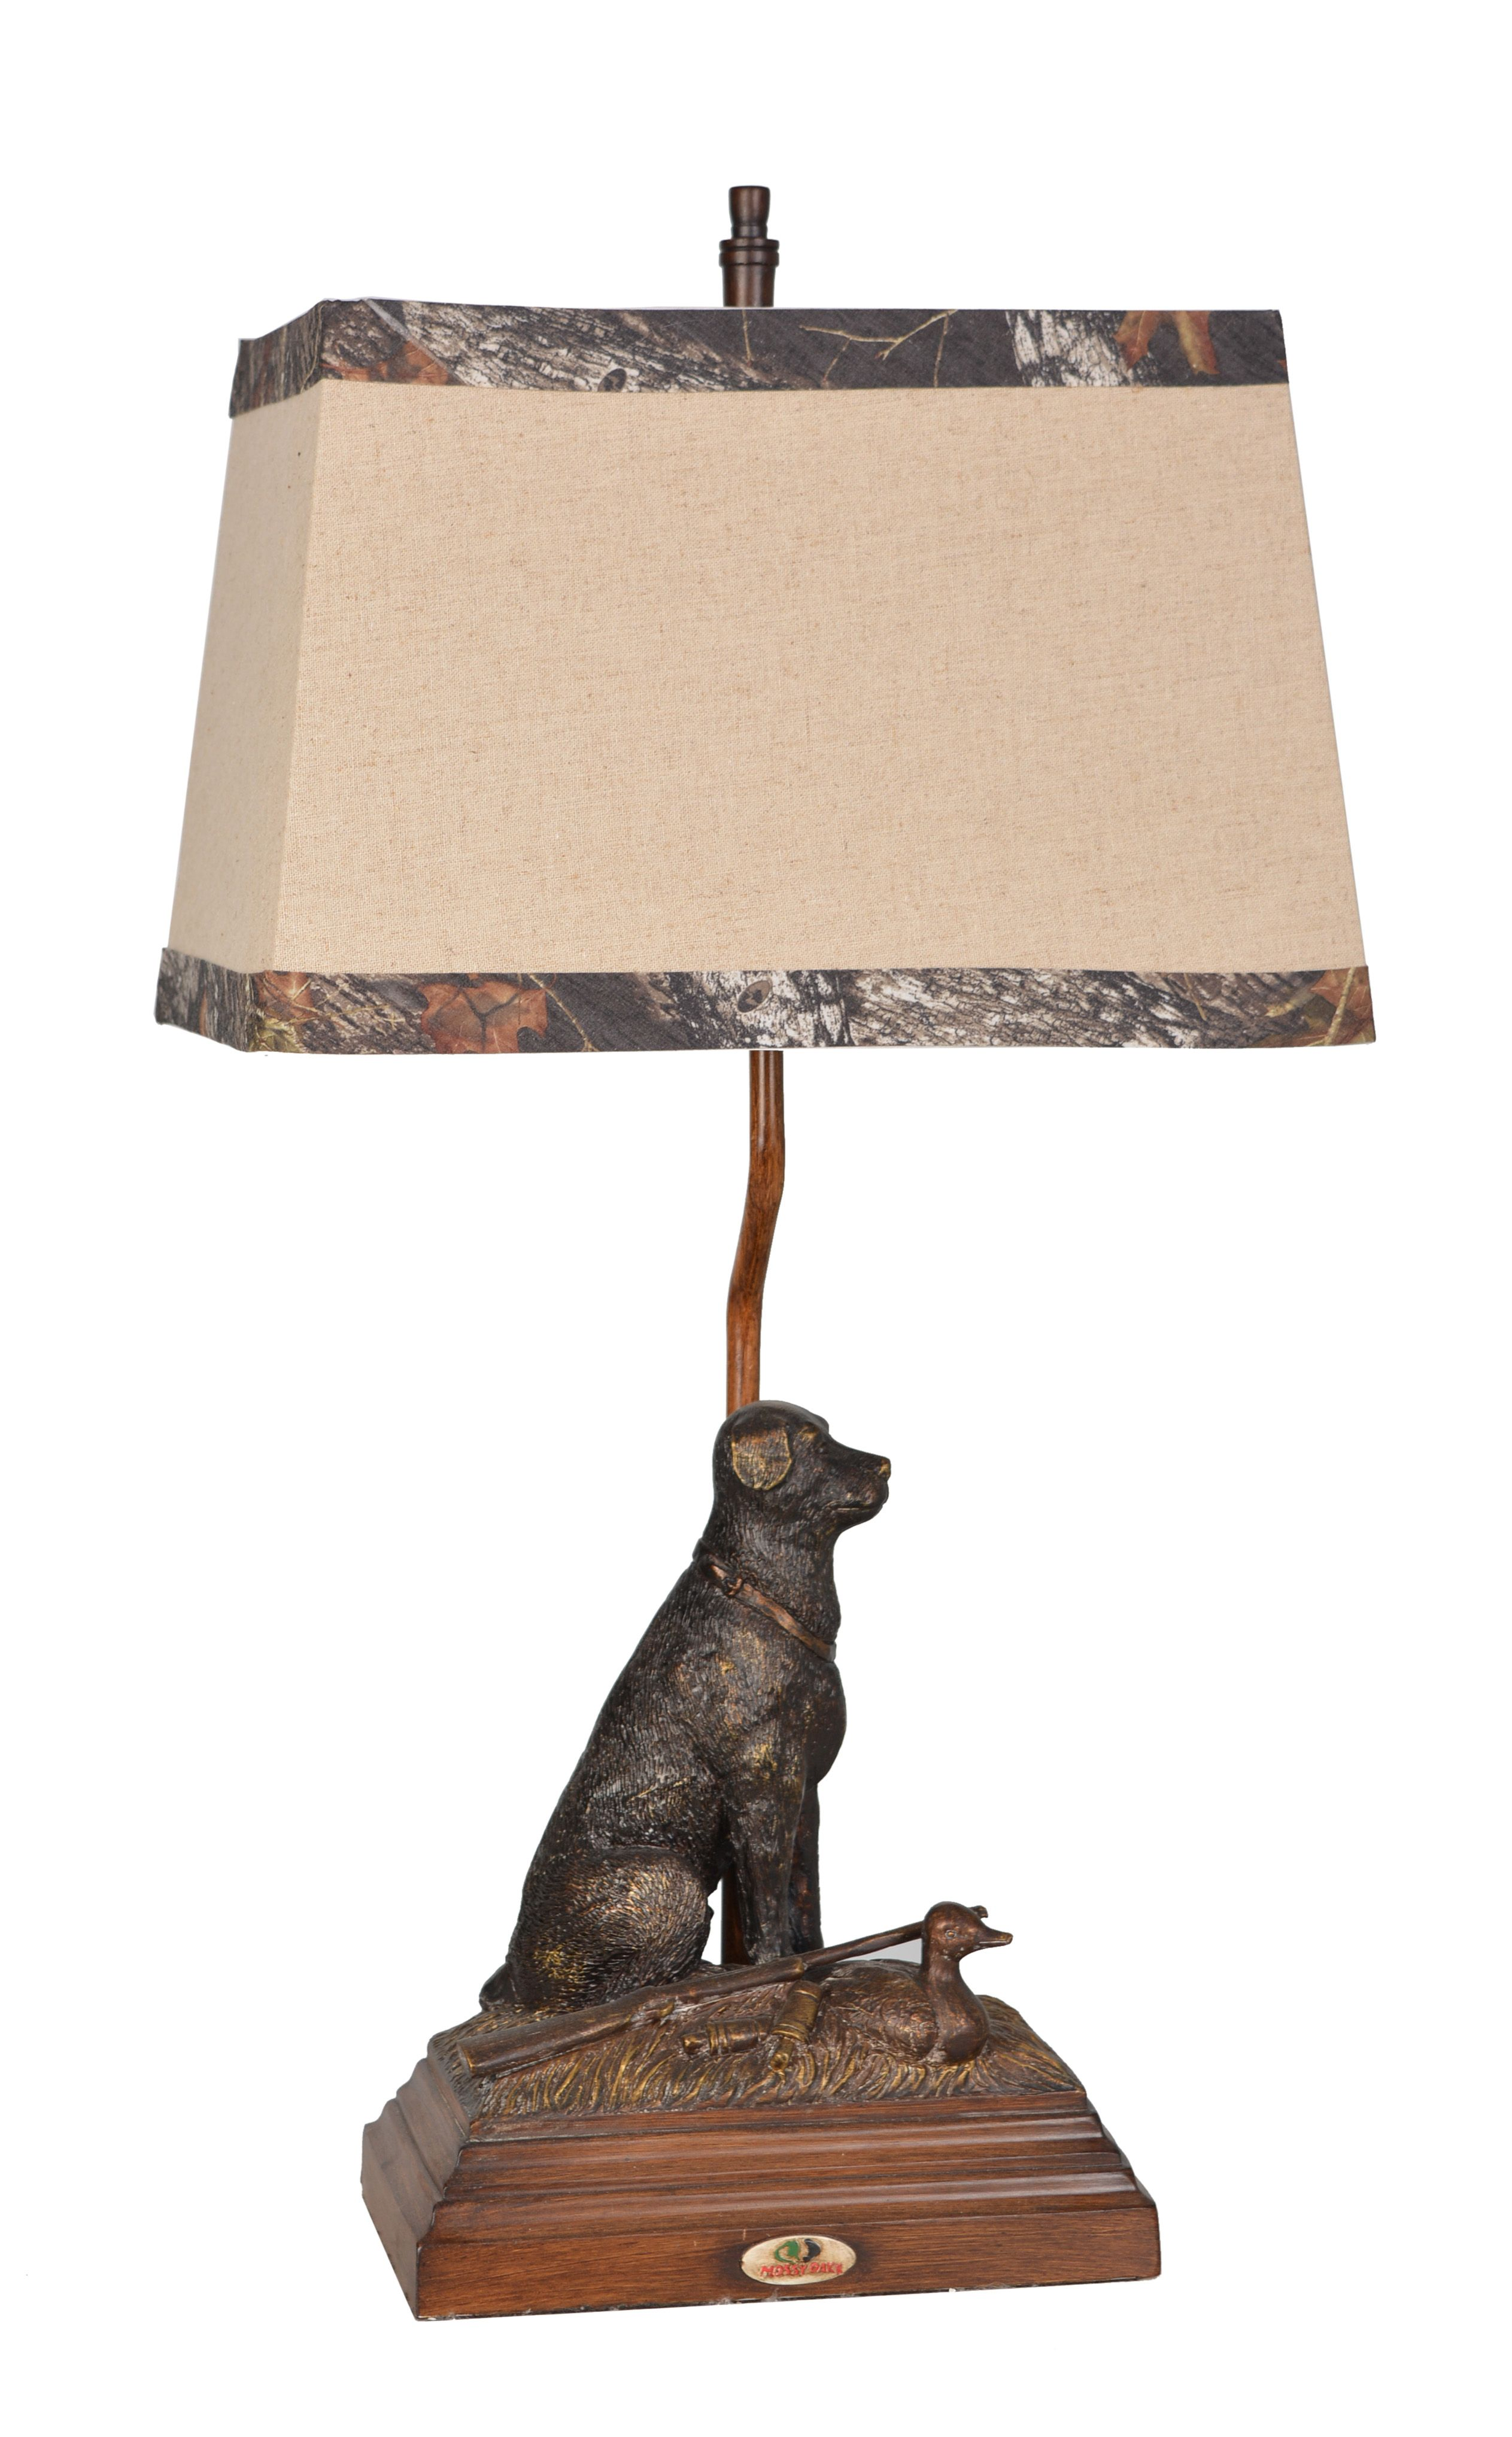 Lps 194 polyresin hunting dog table lamp by lamps per se lodge lps 194 polyresin hunting dog table lamp by lamps per se geotapseo Gallery